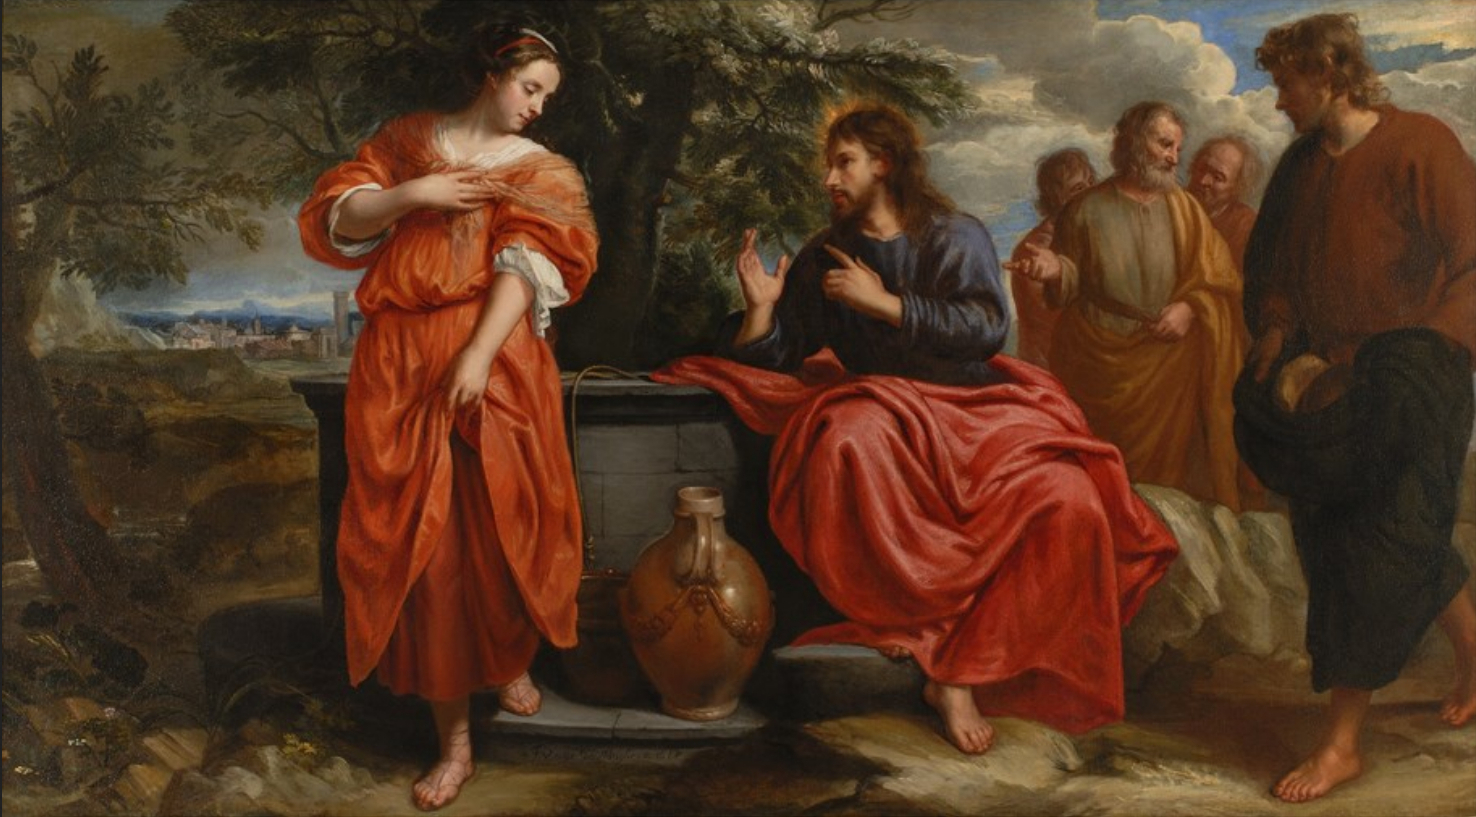 https://i1.wp.com/upload.wikimedia.org/wikipedia/commons/8/8c/Jacob_van_Oost_%28II%29_-_Christ_and_the_Samaritan_Woman_at_the_Well.jpg